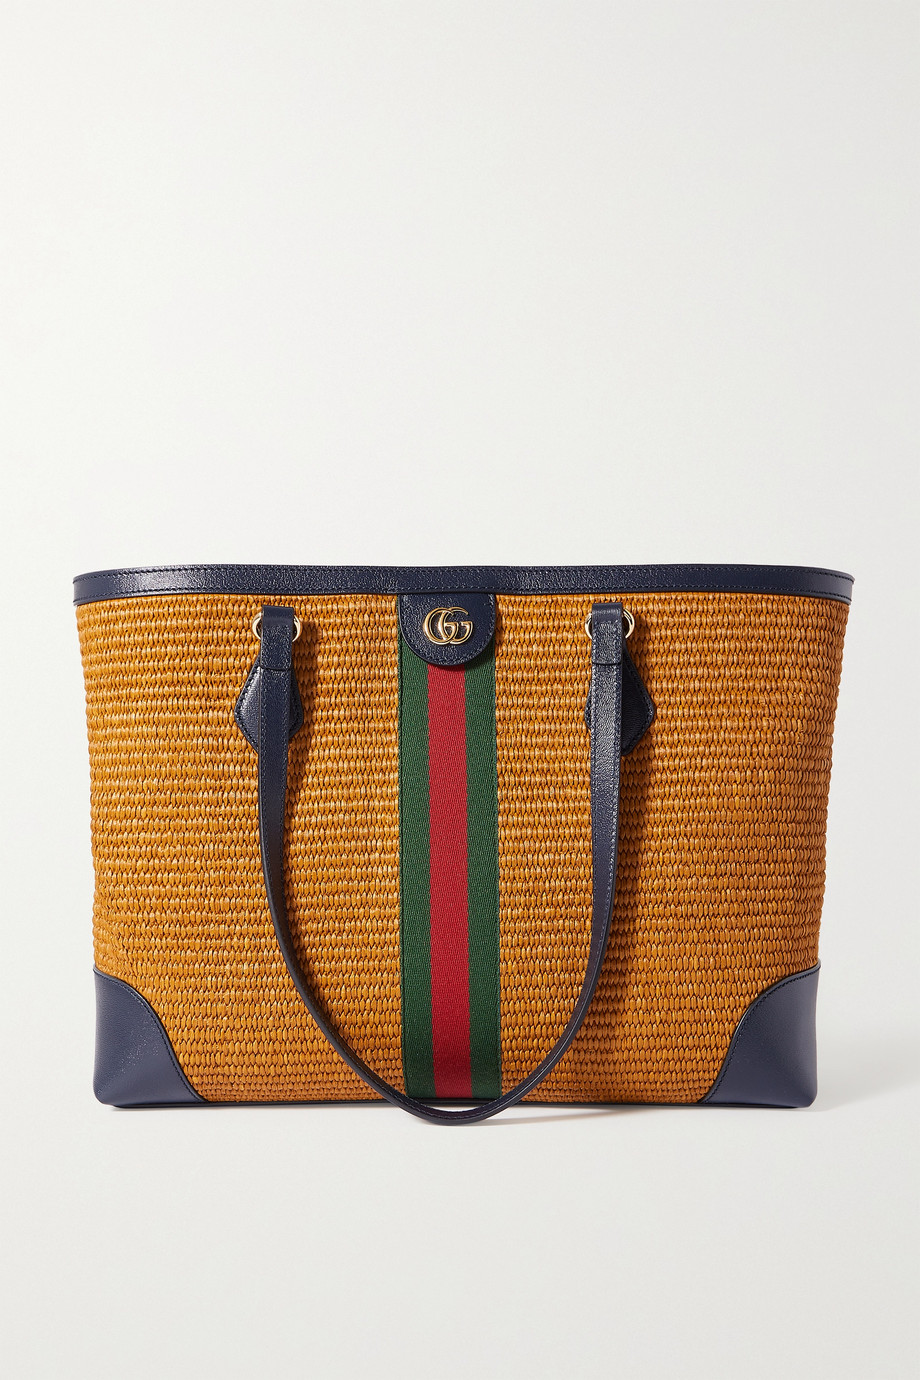 Gucci Sac à main en raphia à finitions en cuir et à ruban web Ophidia Medium